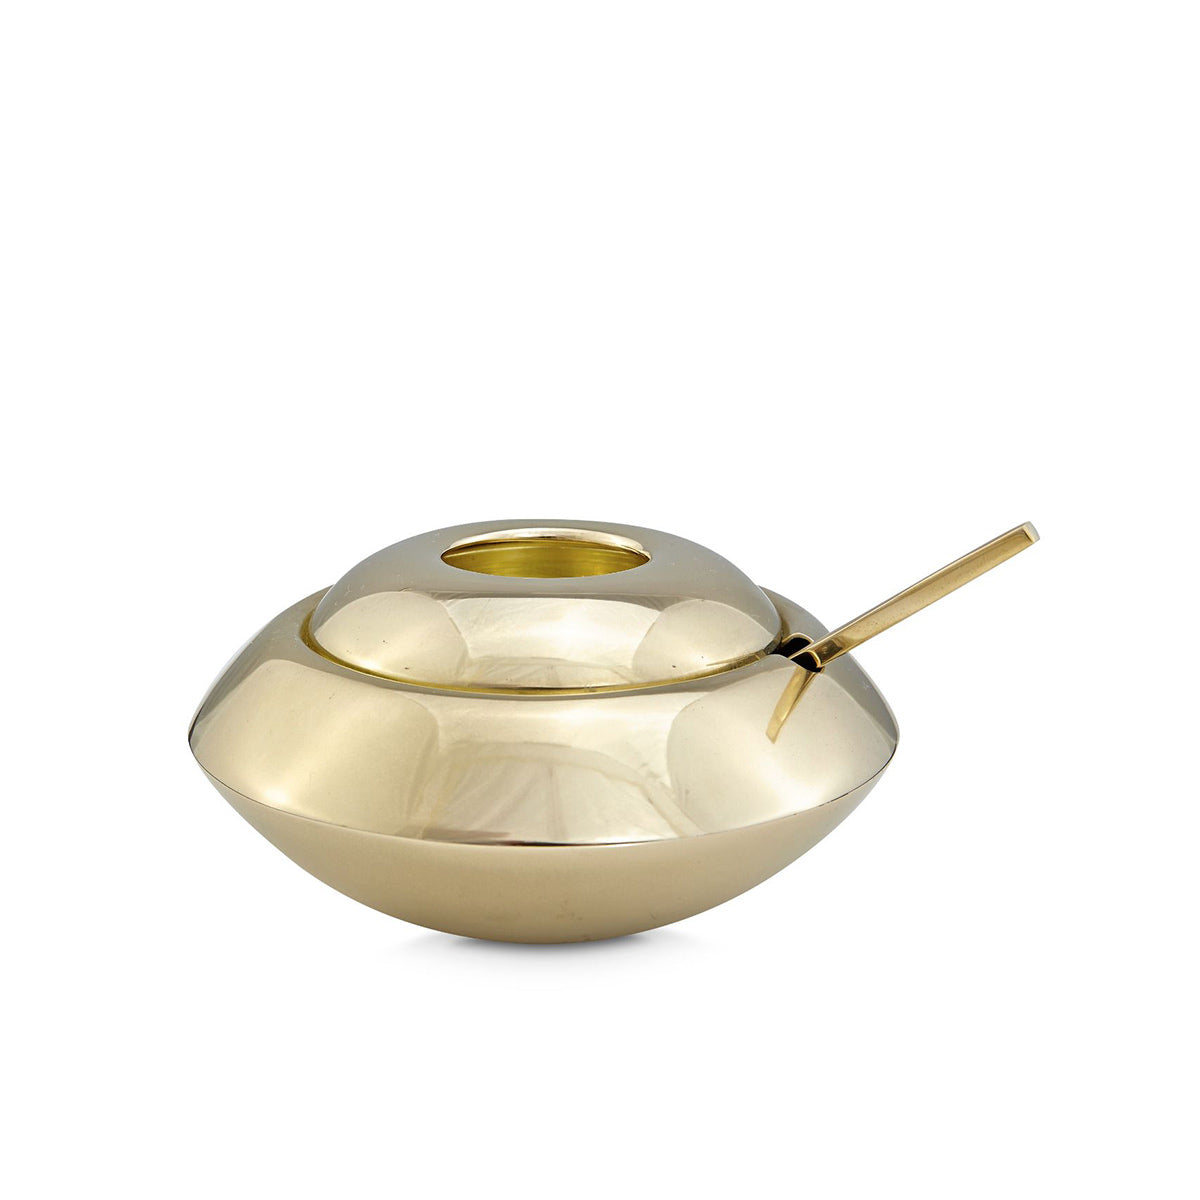 Tom Dixon Form Sugar Bowl And Spoon